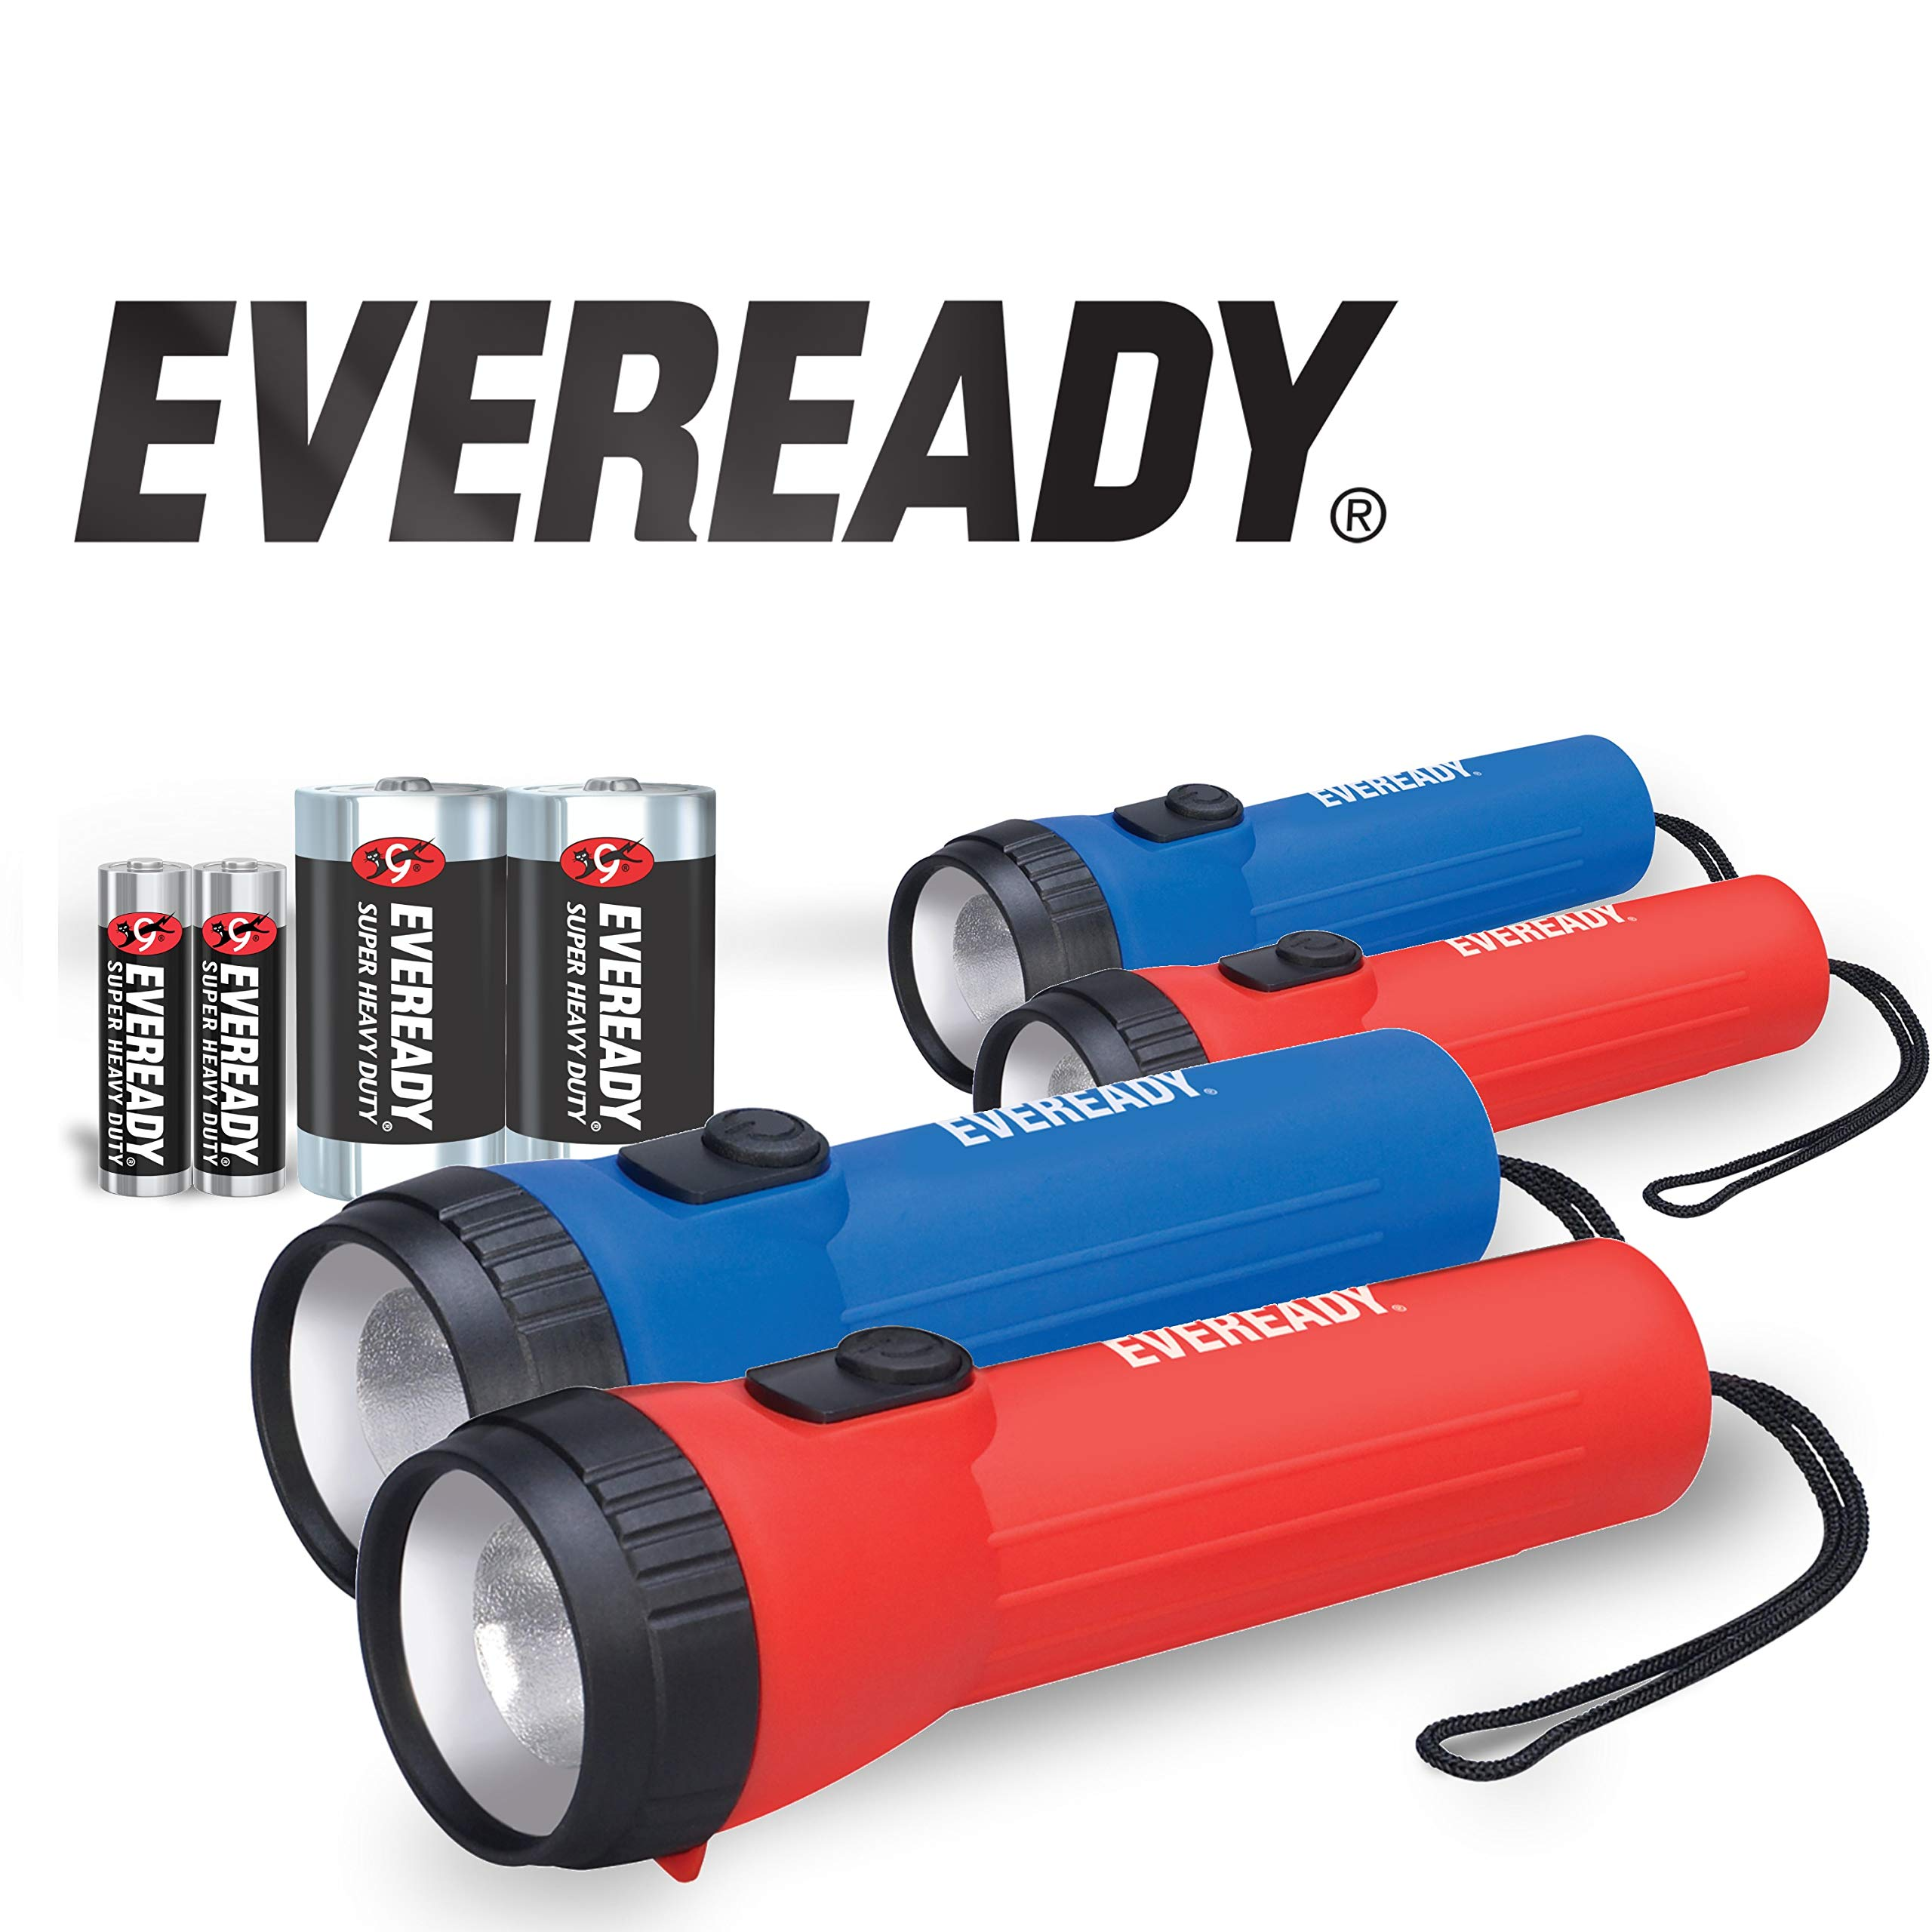 Eveready LED Flashlight 4-Pack , 25 Lumens, Durable Ribbed Casing for Strength and Grip by Eveready